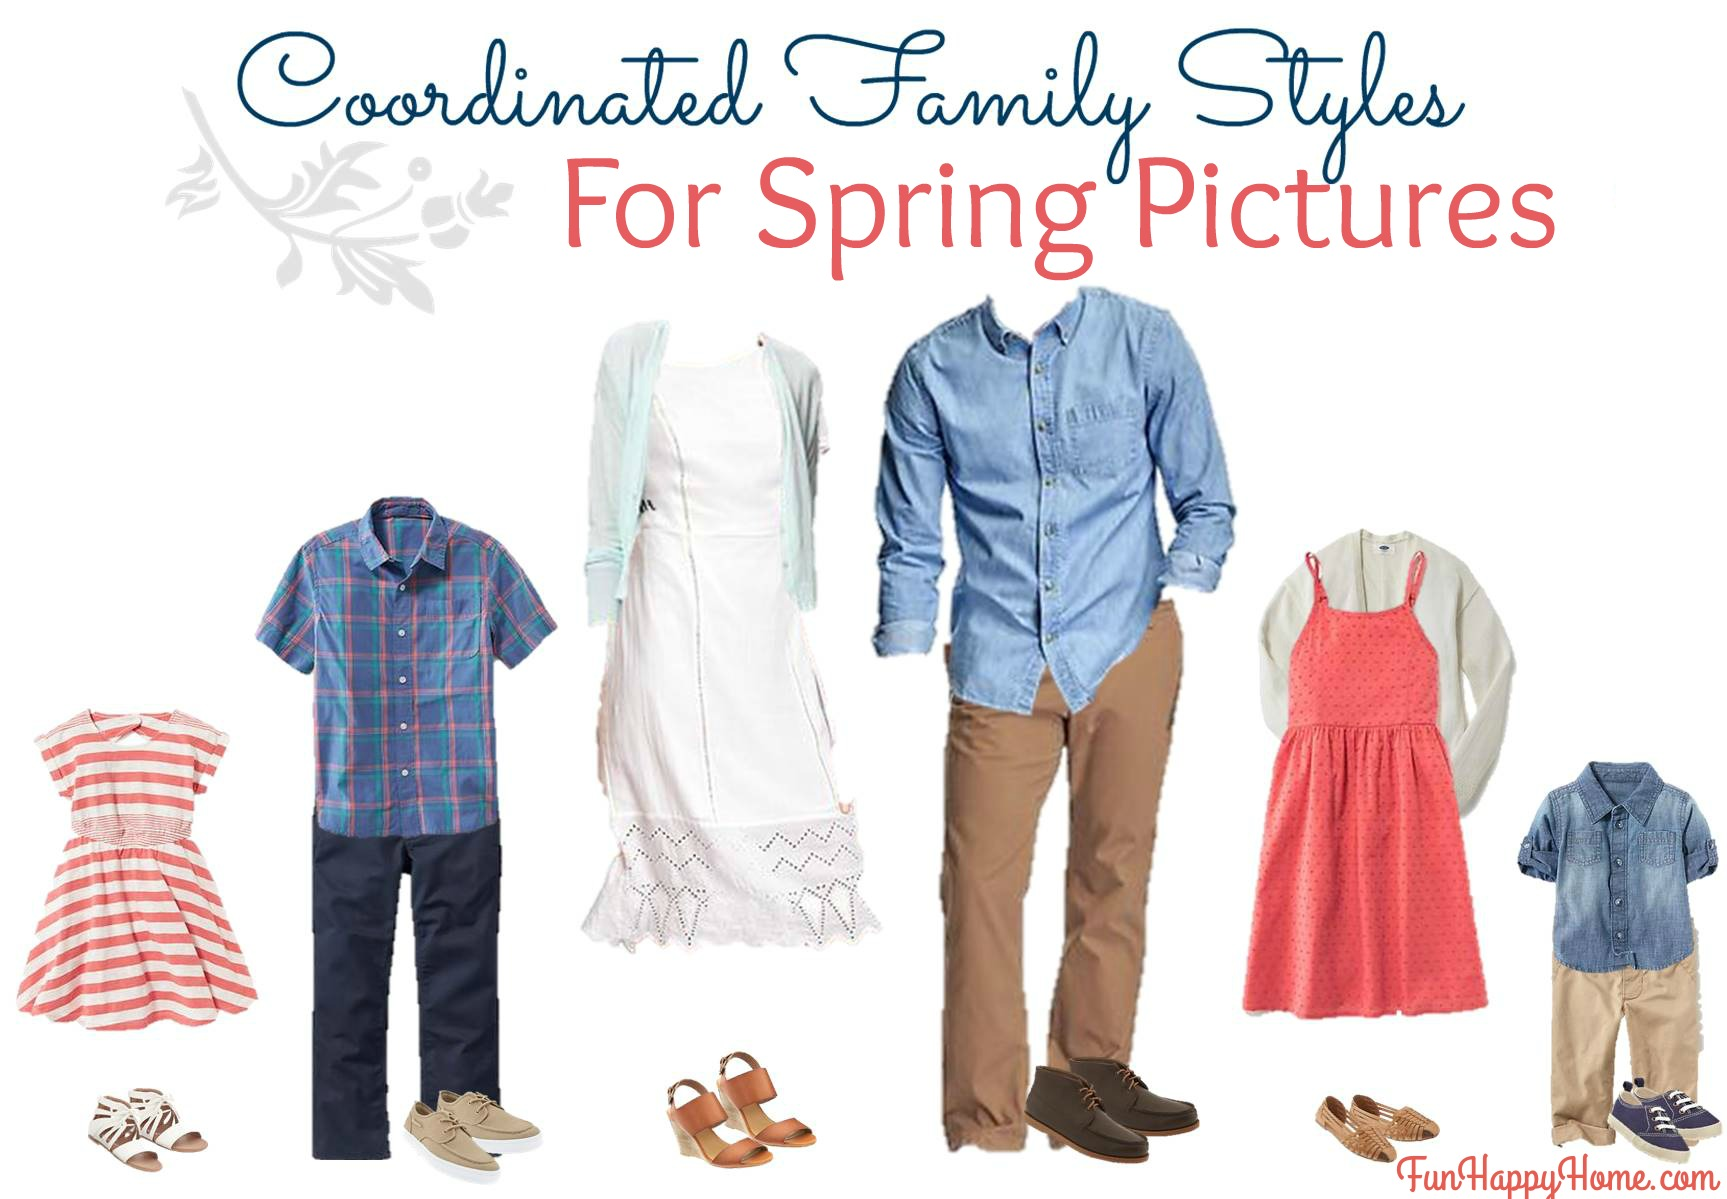 Coordinated Family Styles For Spring Pictures From FunHappyHome